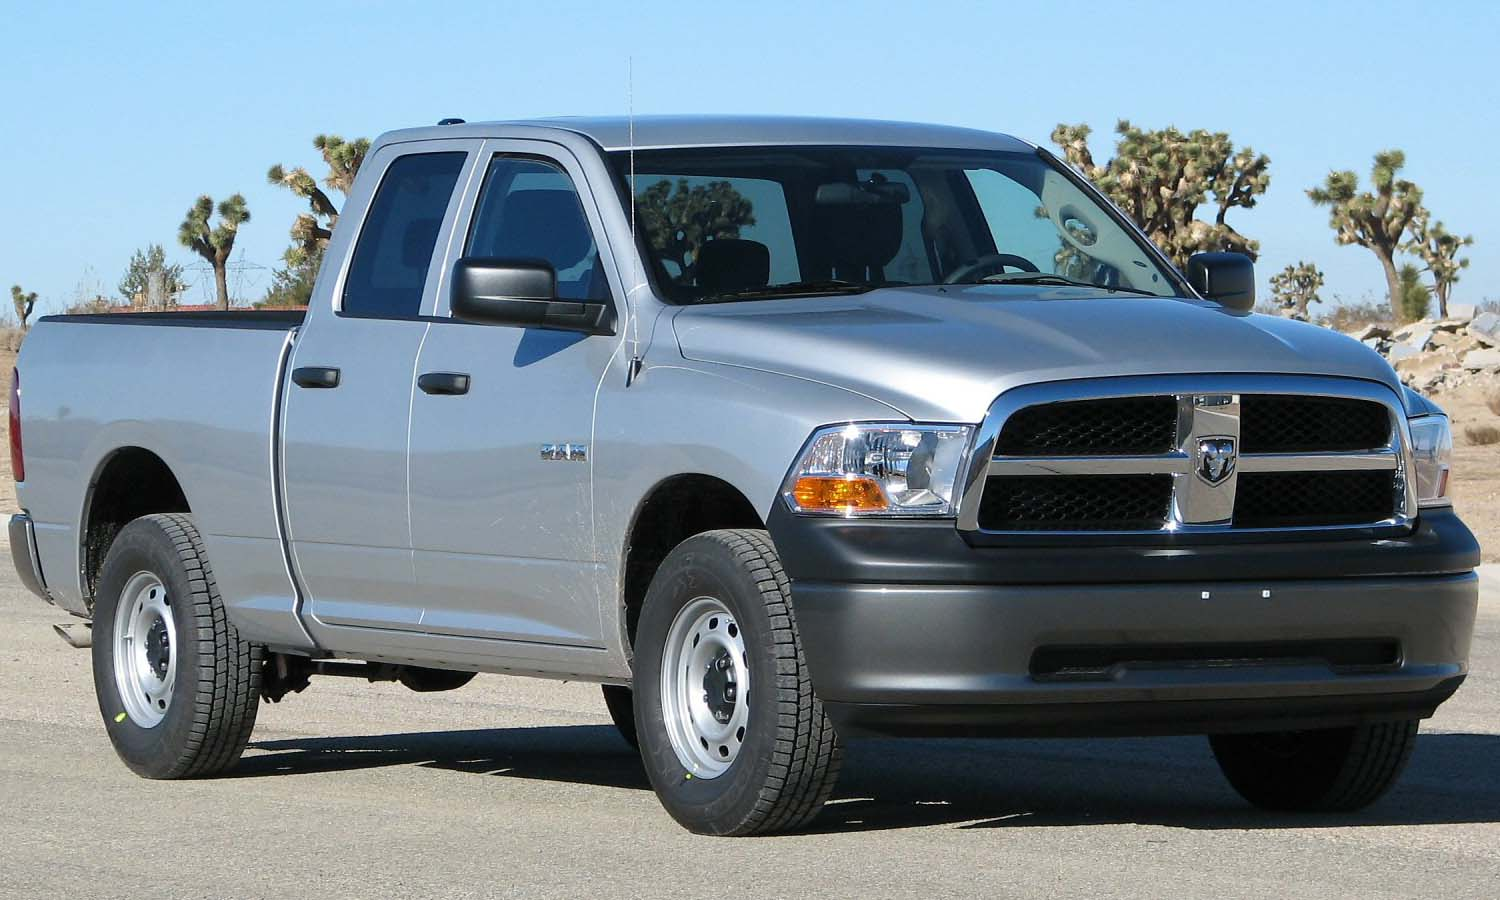 Dodge Ram Pickup 1500 interior #2